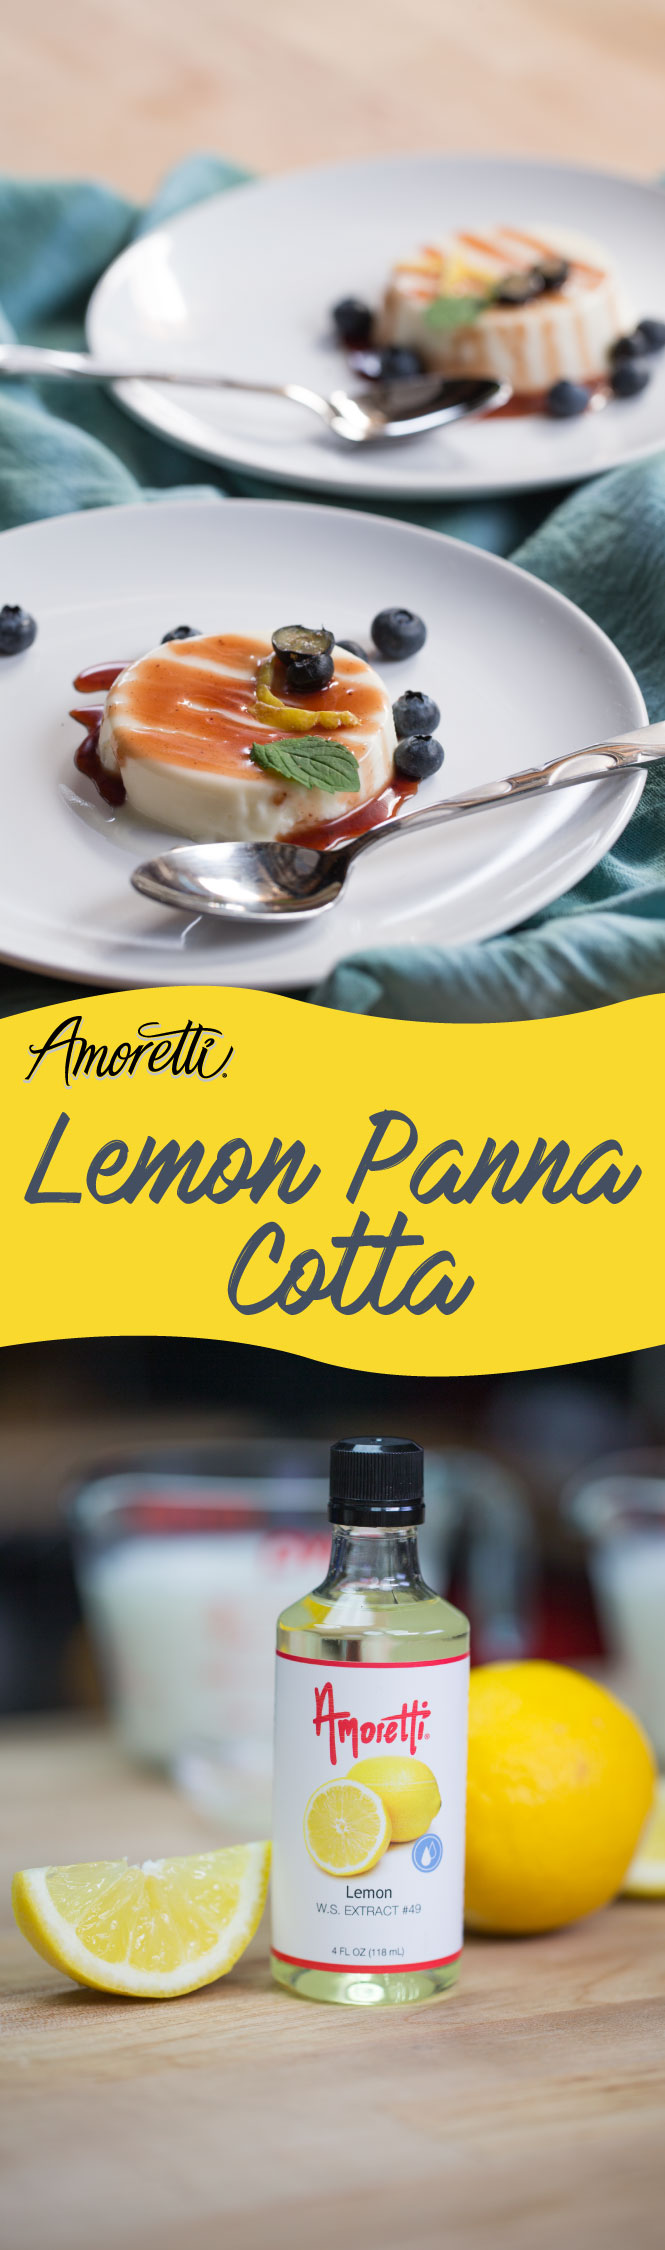 Easy to make and even easier to eat, Lemon Panna Cotta is the perfect treat for hot days!